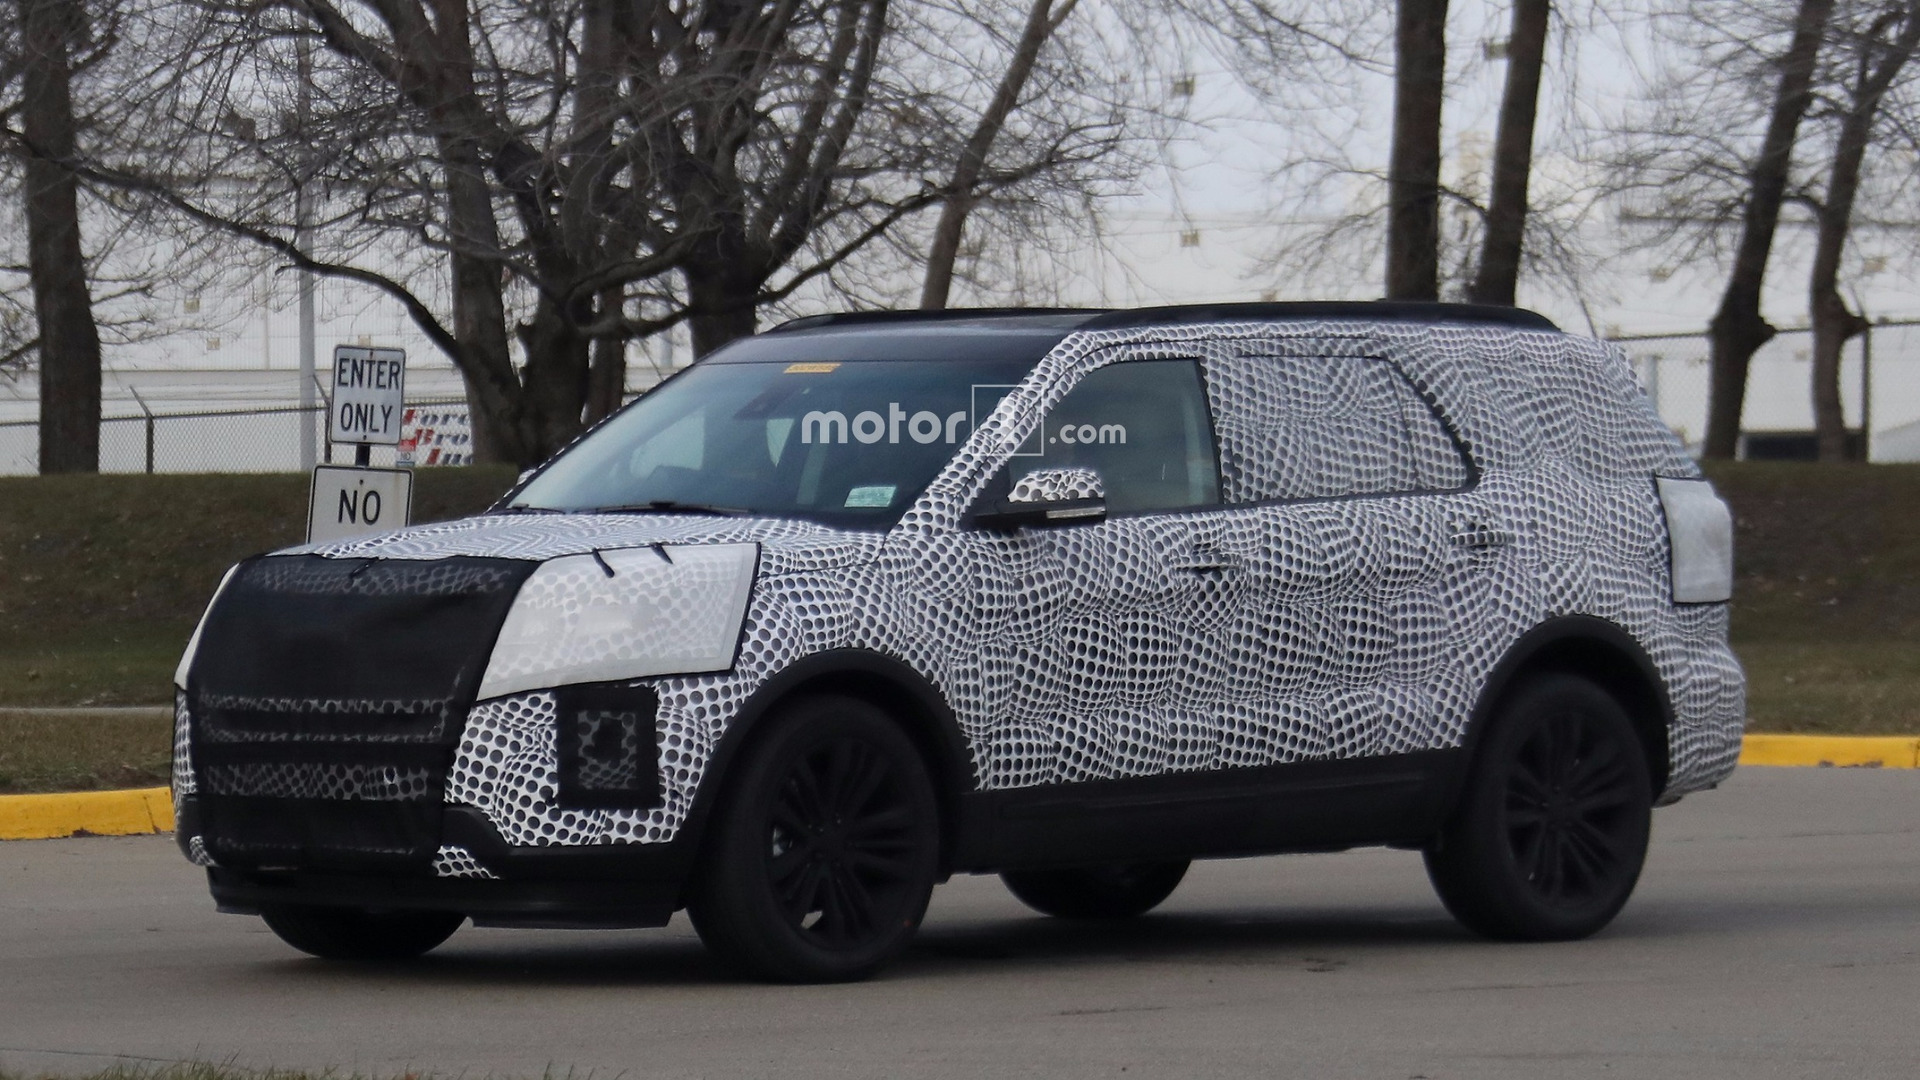 2019 Ford Explorer Caught Hiding Evolutionary Design